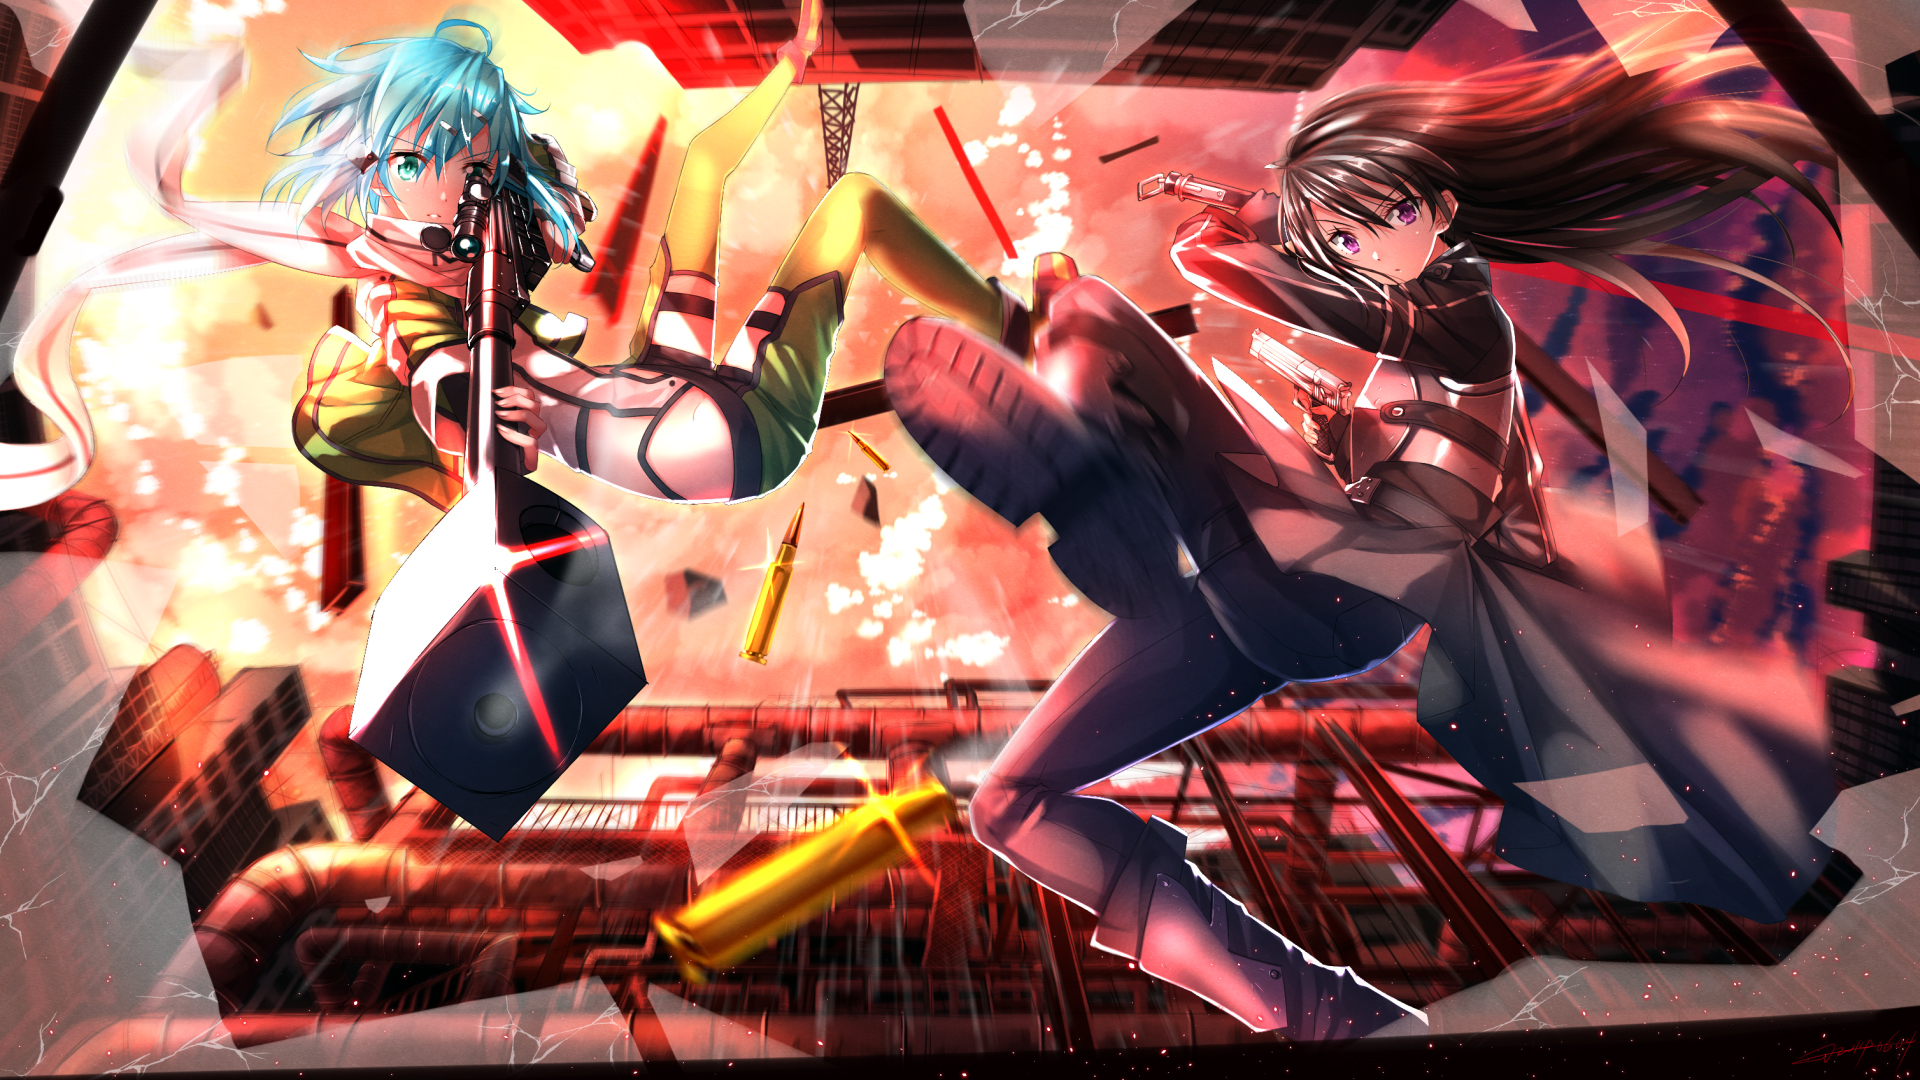 ... SAO 2. HD 1920x1080 1080p wallpaper and compatible for 1280x720